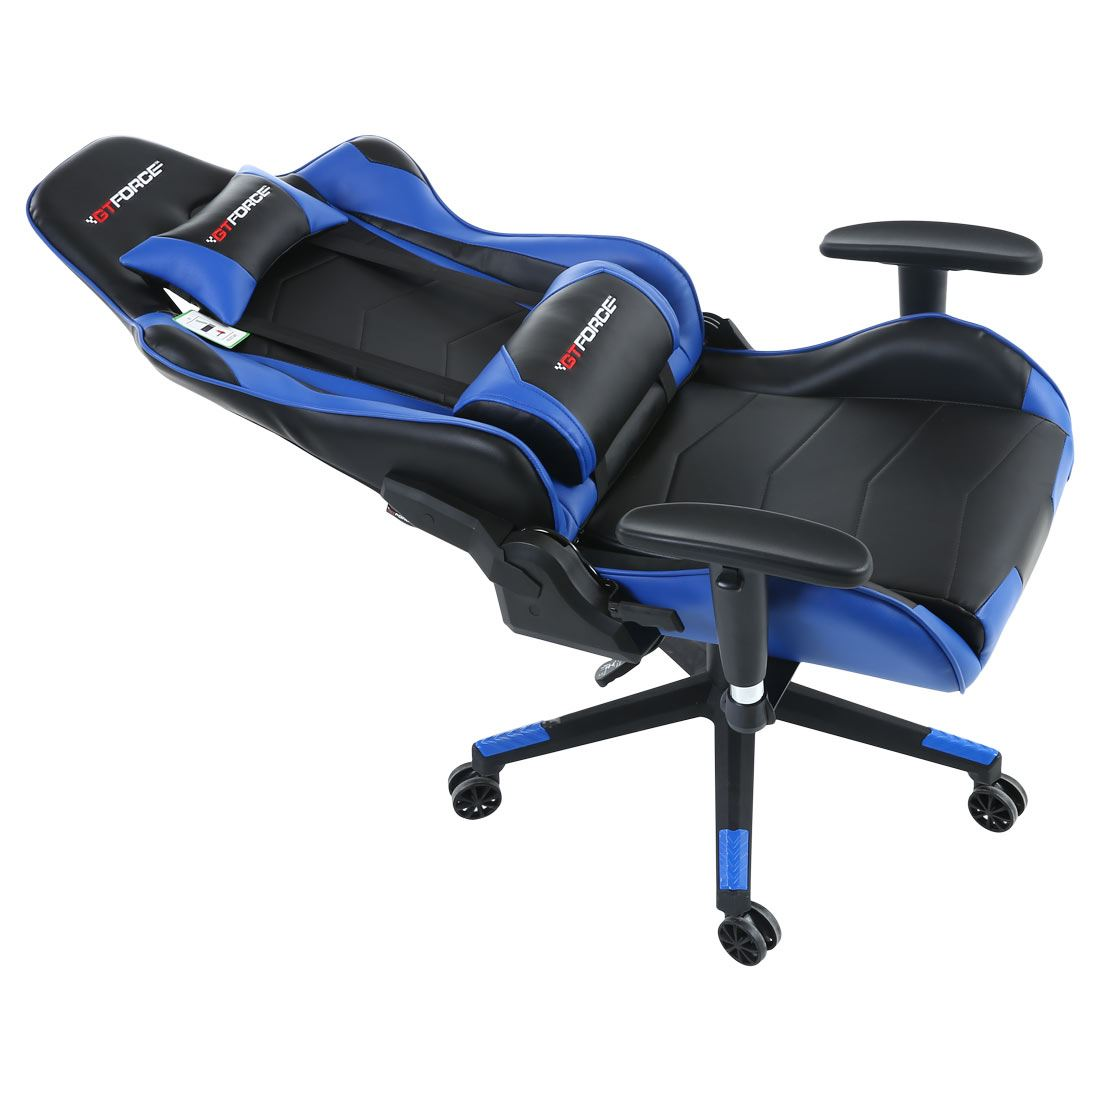 pro gaming chairs uk space saver high chair tray gtforce fx reclining sports racing office desk